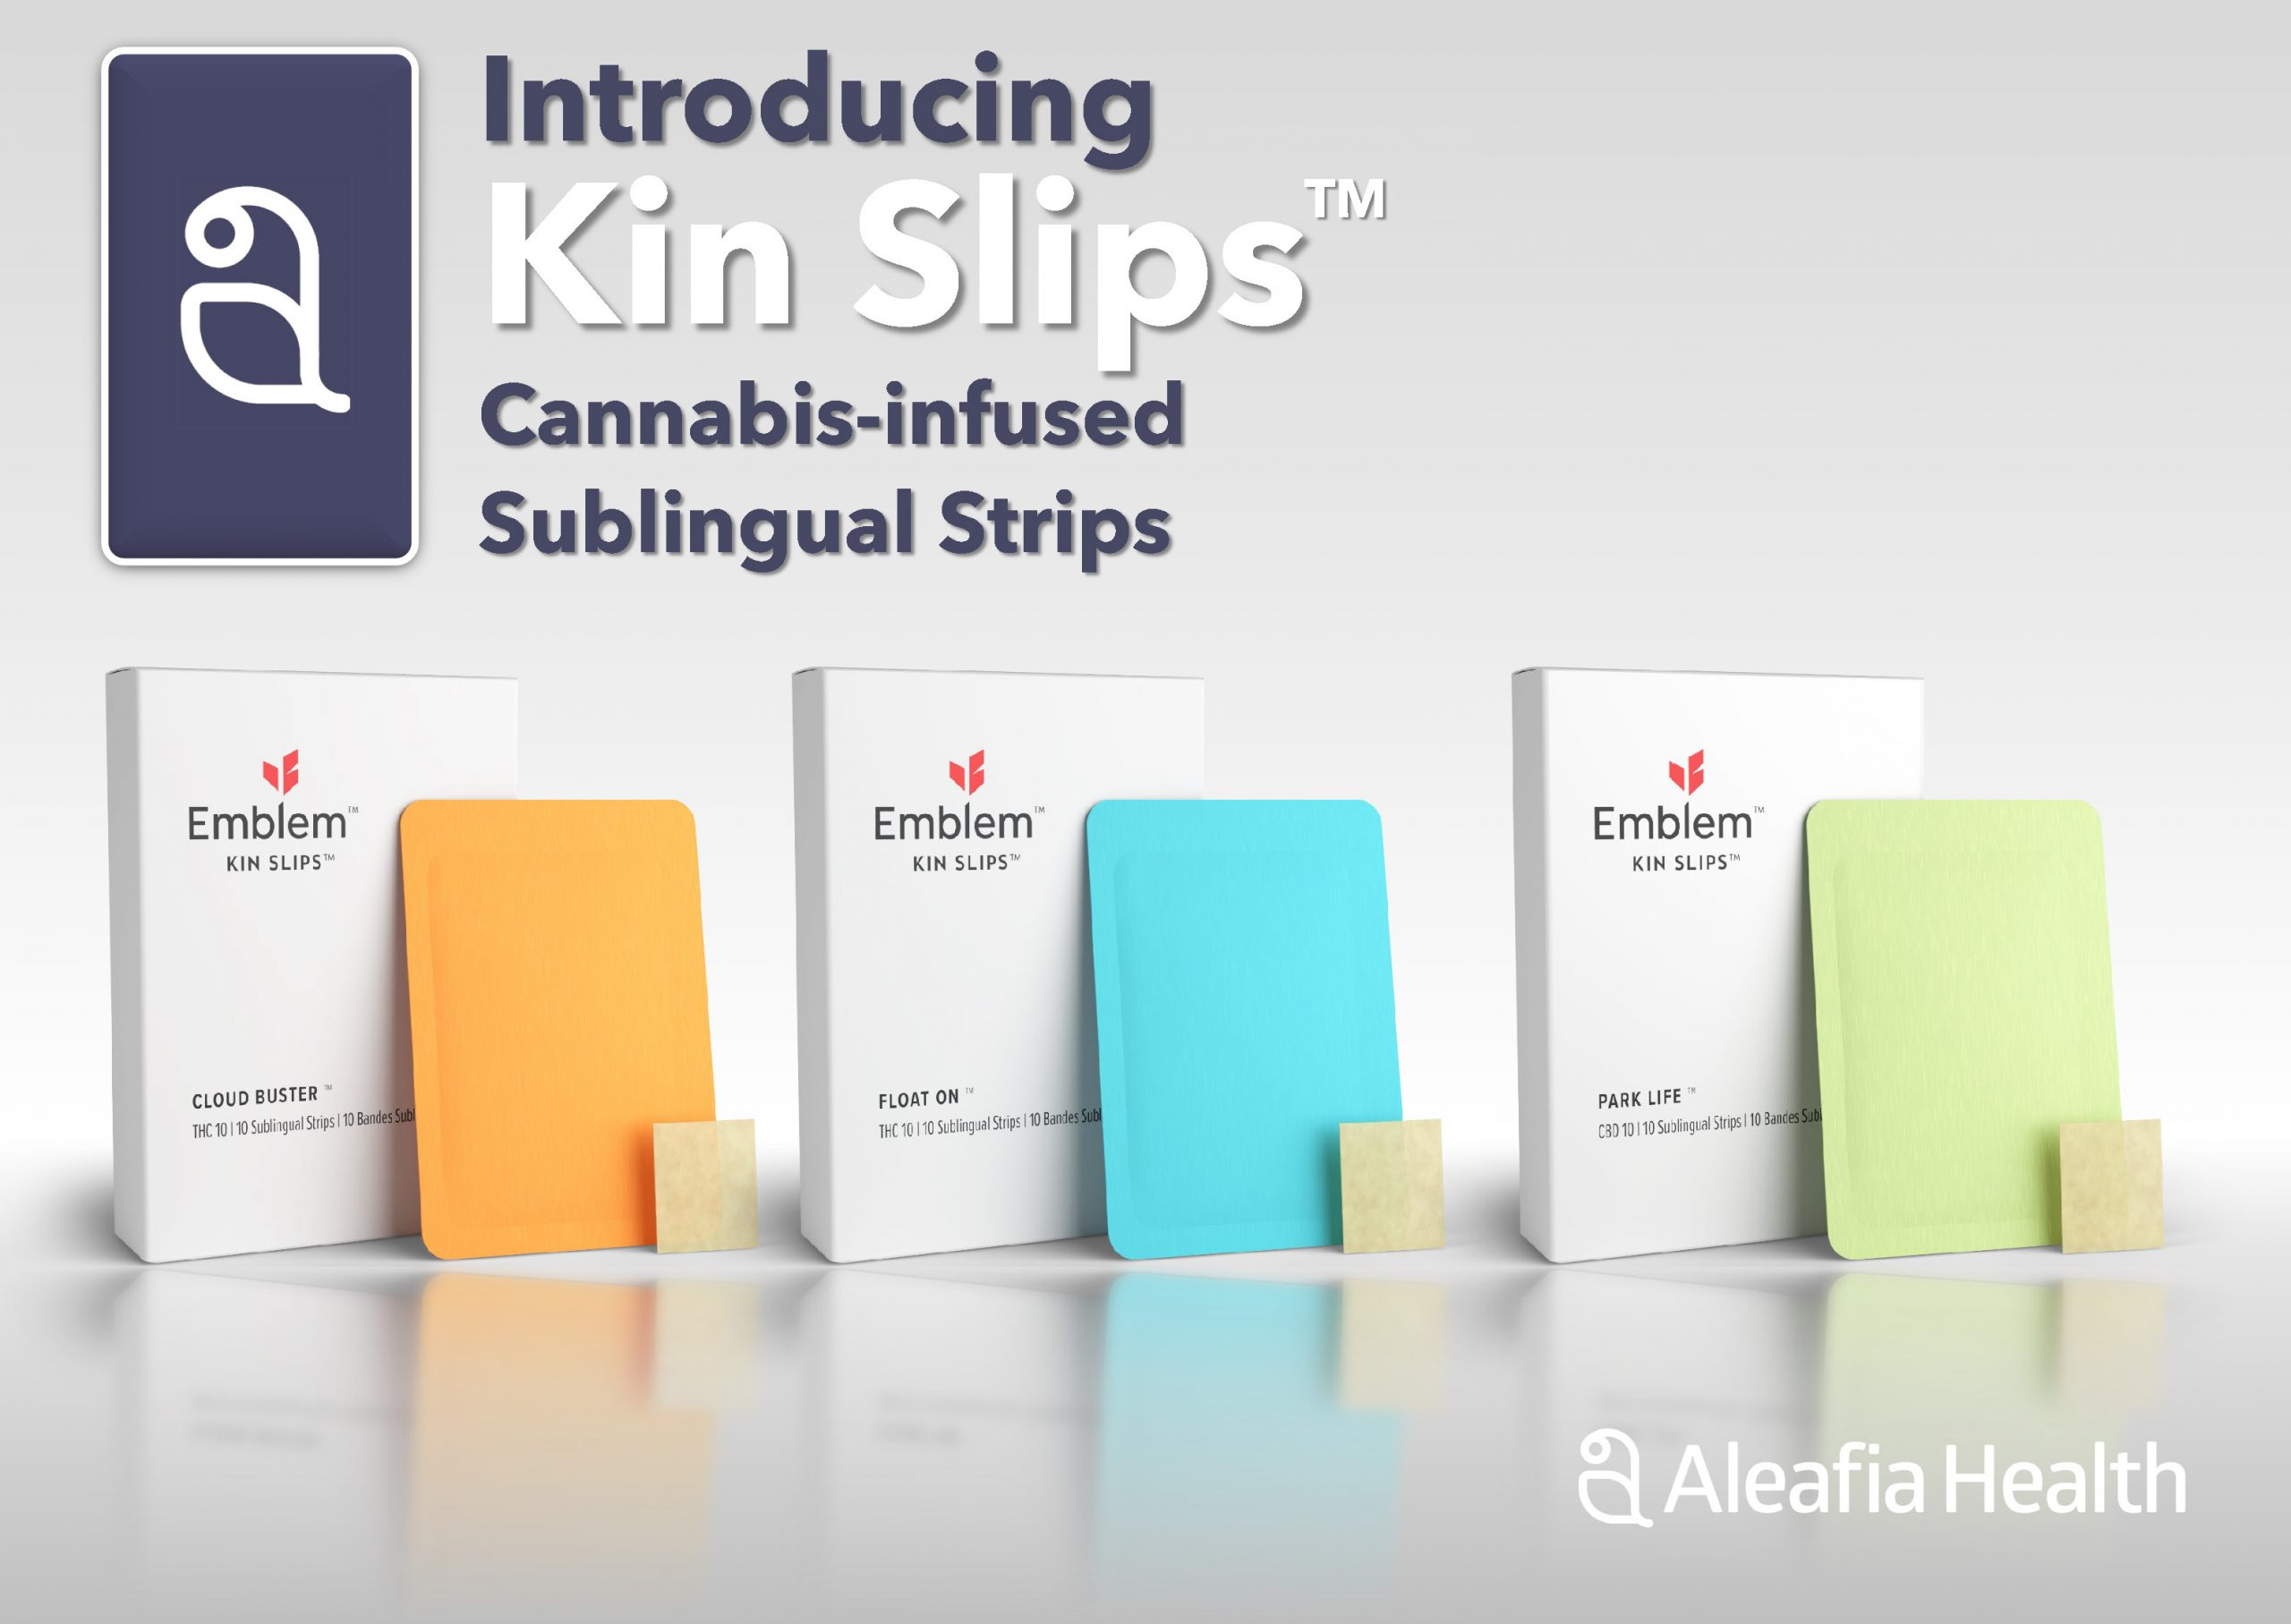 Aleafia Health Launches Kin Slips® Rapid Onset Cannabis-Infused Sublingual Strips